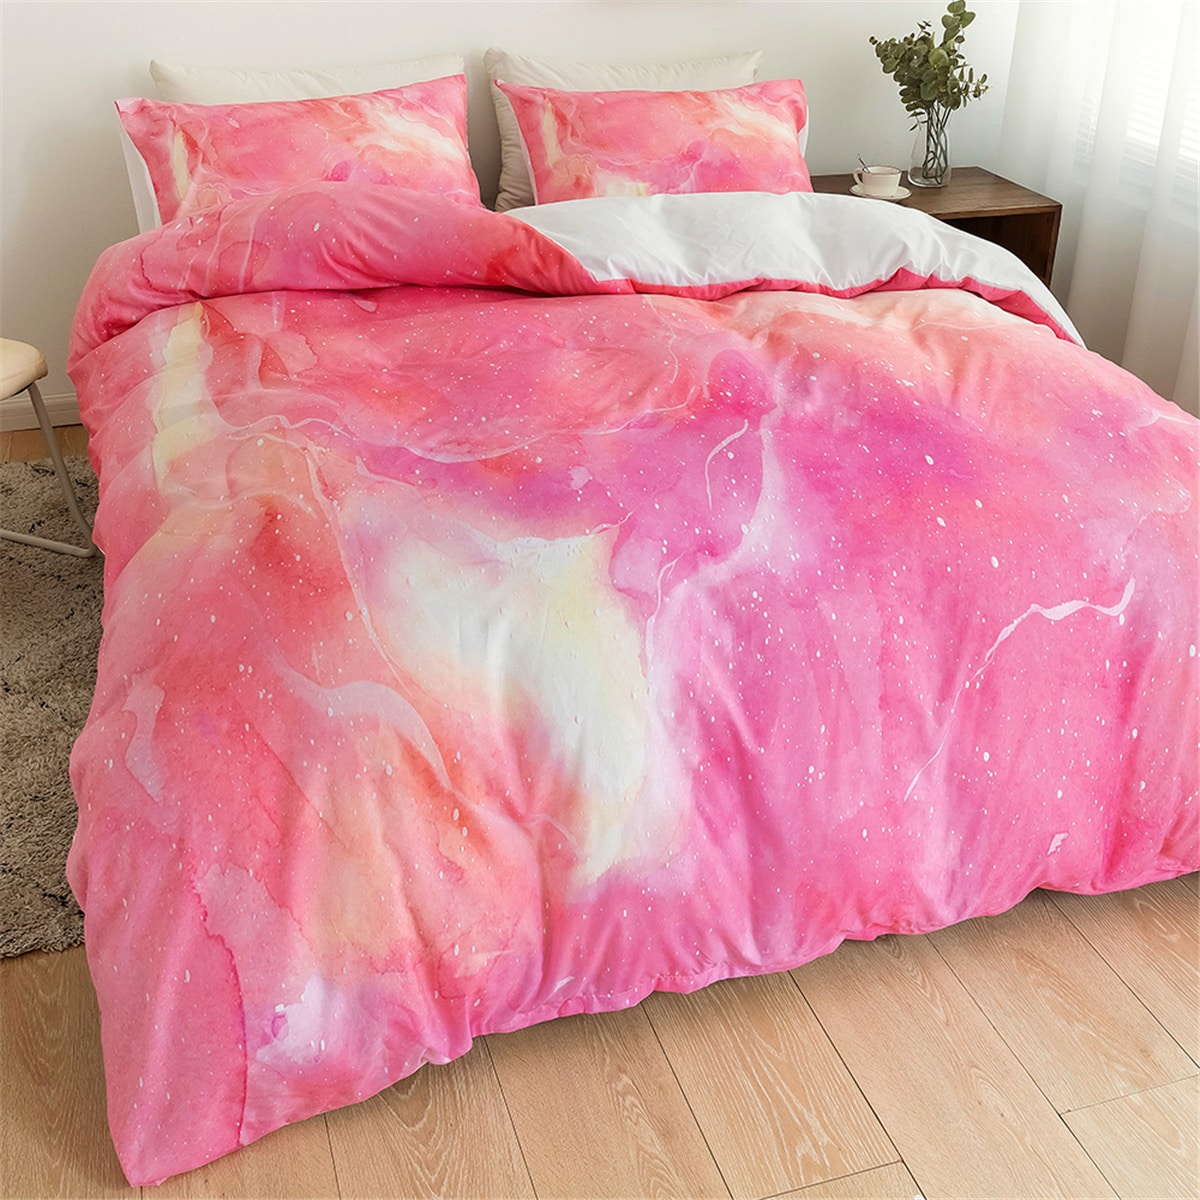 Kids Marble Pattern Duvet Cover Sets Without Filler, SHEIN  - buy with discount